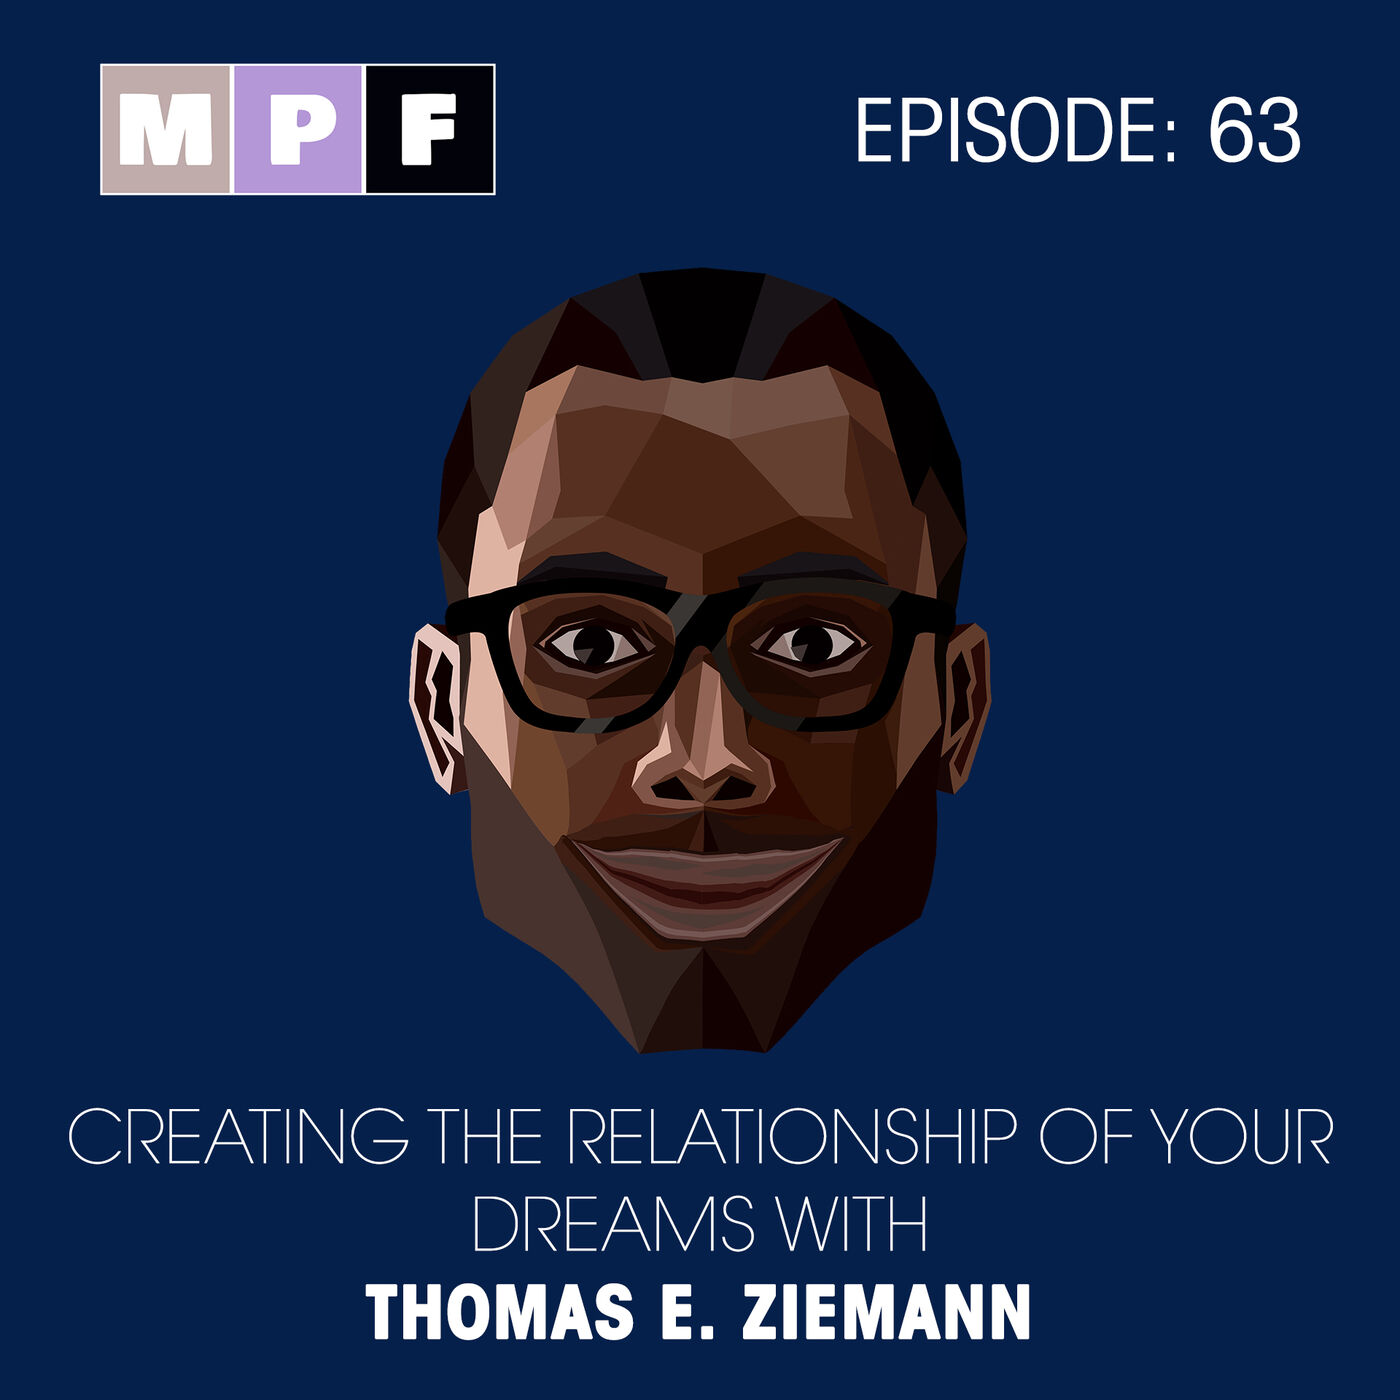 Creating the Relationship Of your Dreams with Thomas E. Ziemann